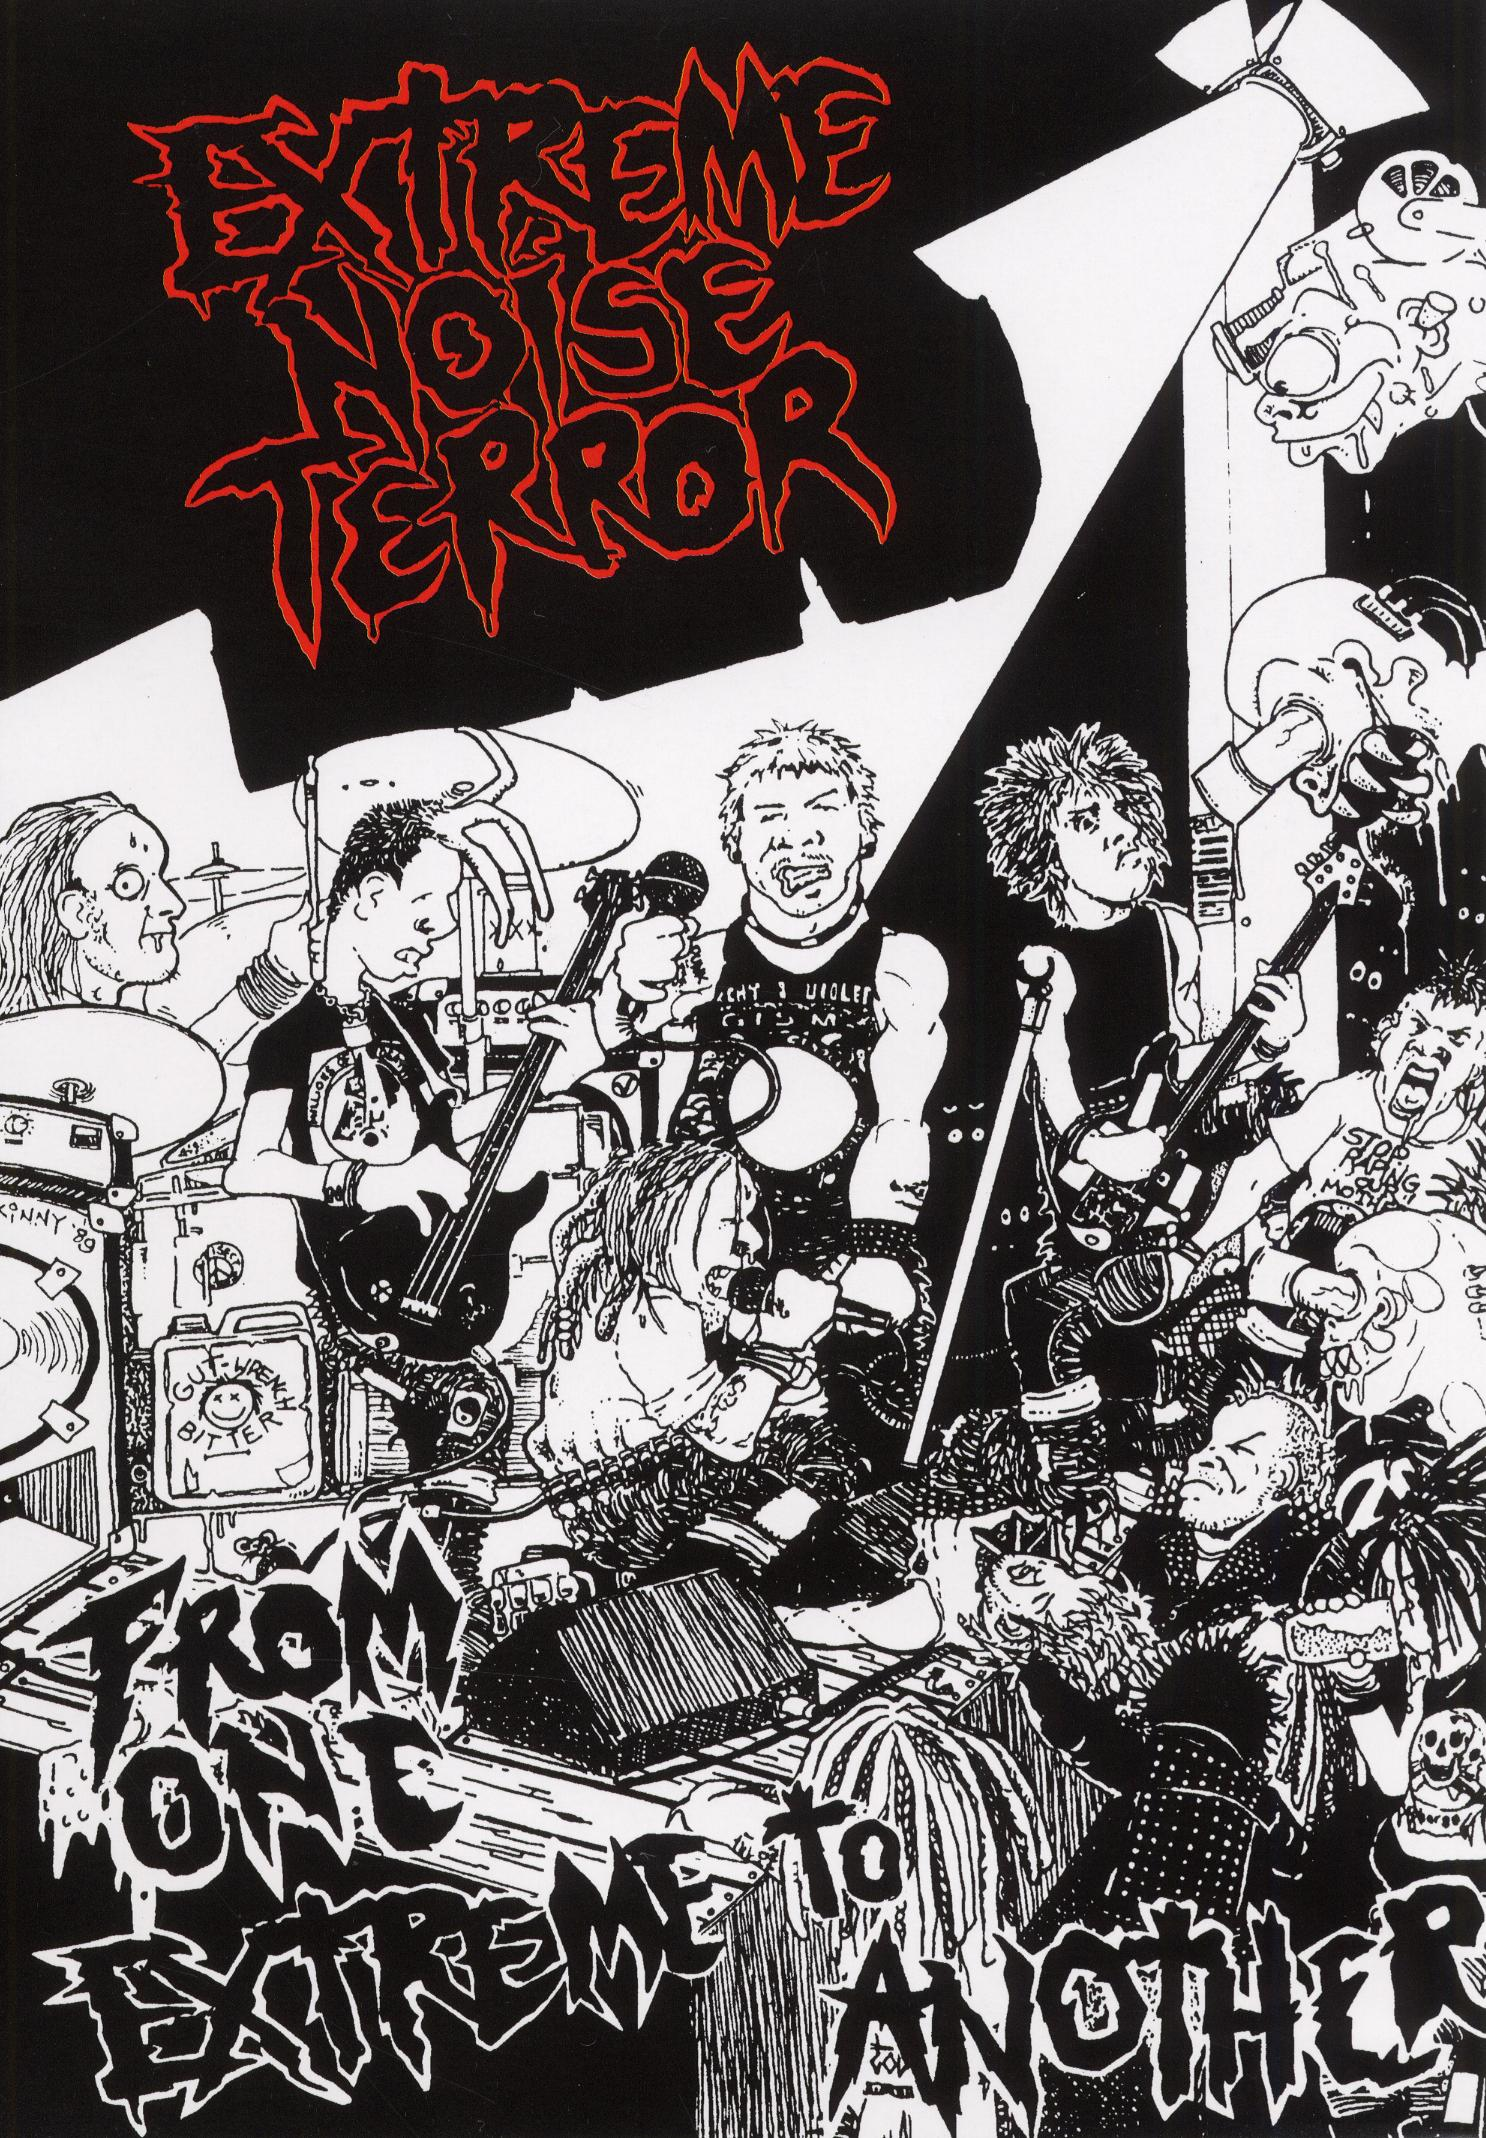 Extreme Noise Terror: From One Extreme to Another